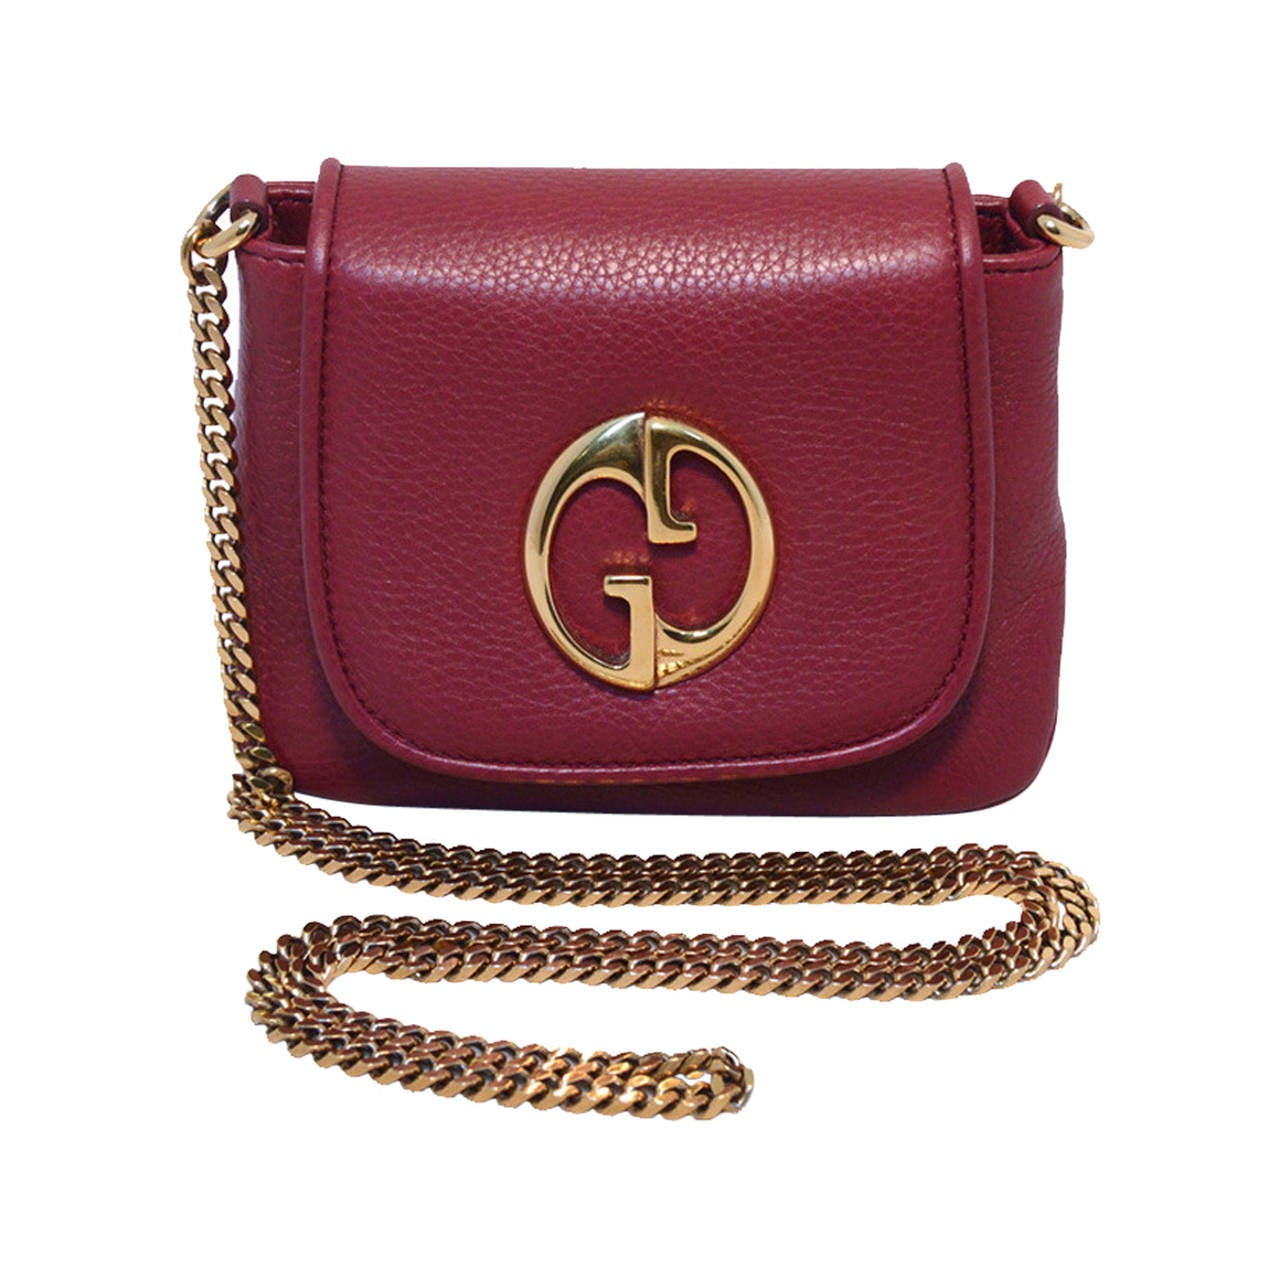 9d78c9714c9 Gucci Maroon Plum Leather and Gold Crossbody Shoulder Bag at 1stdibs